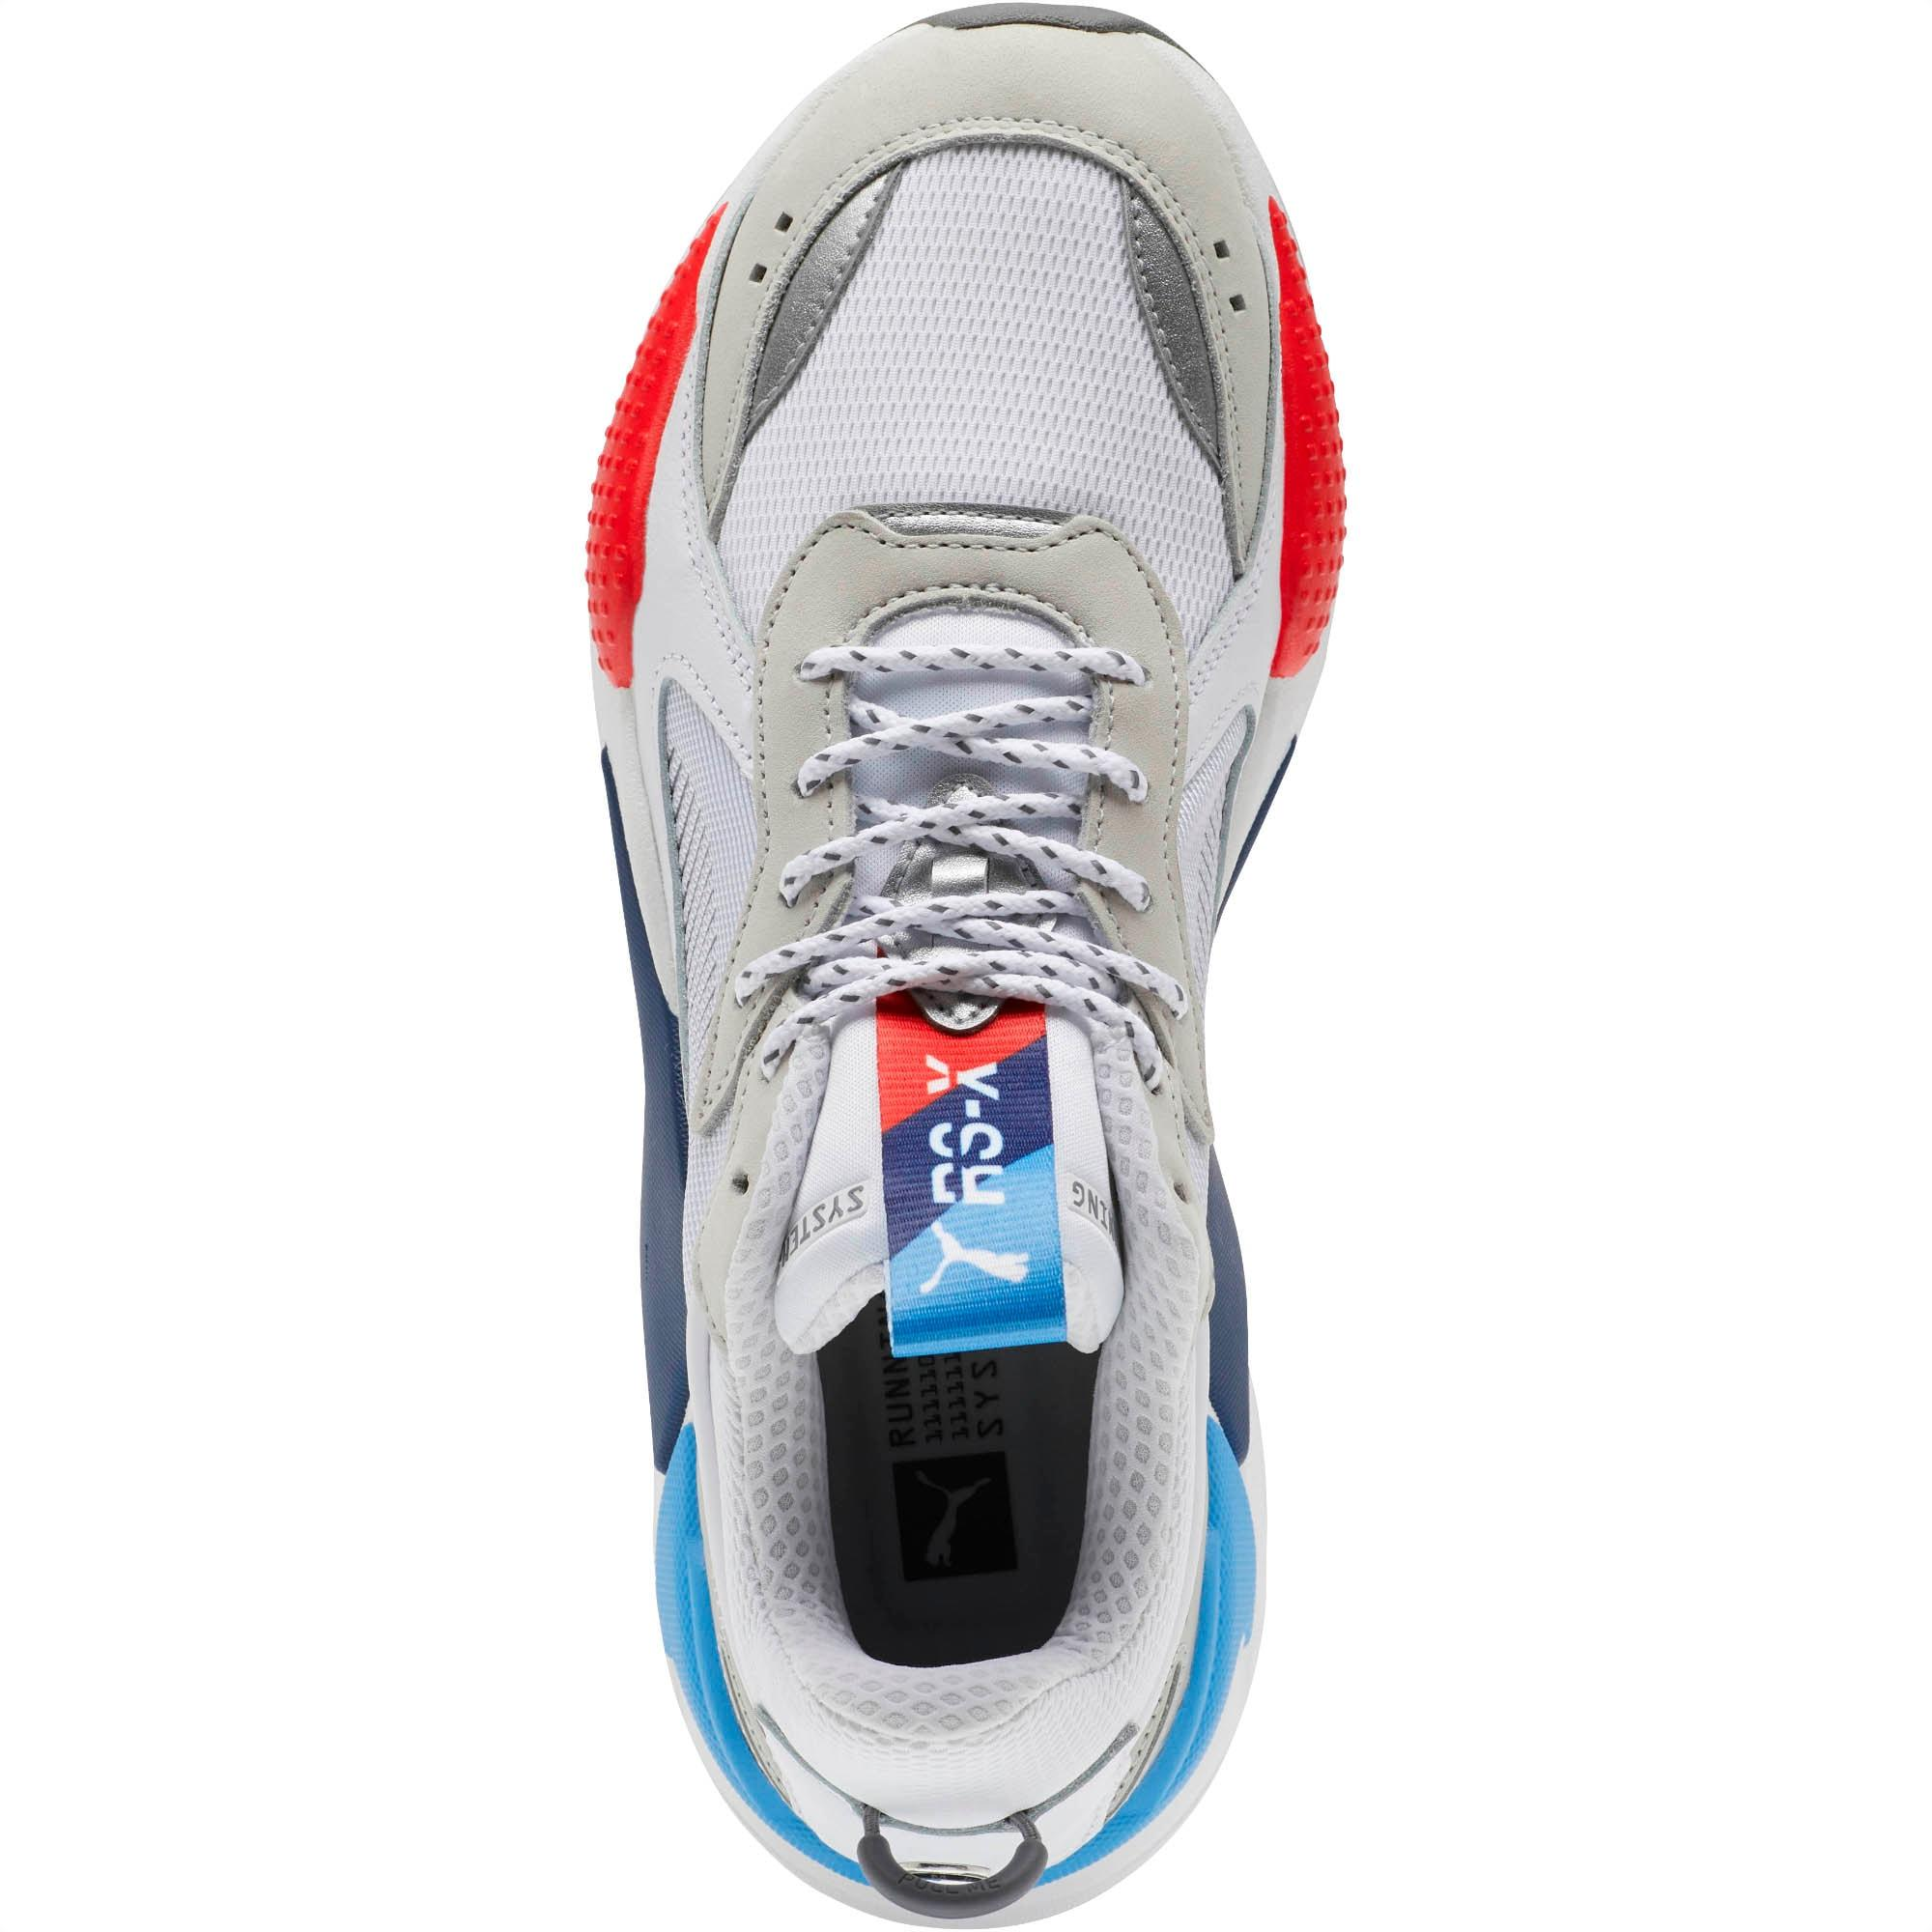 PUMA Leather Rs-x Bmw Mms Sneakers in